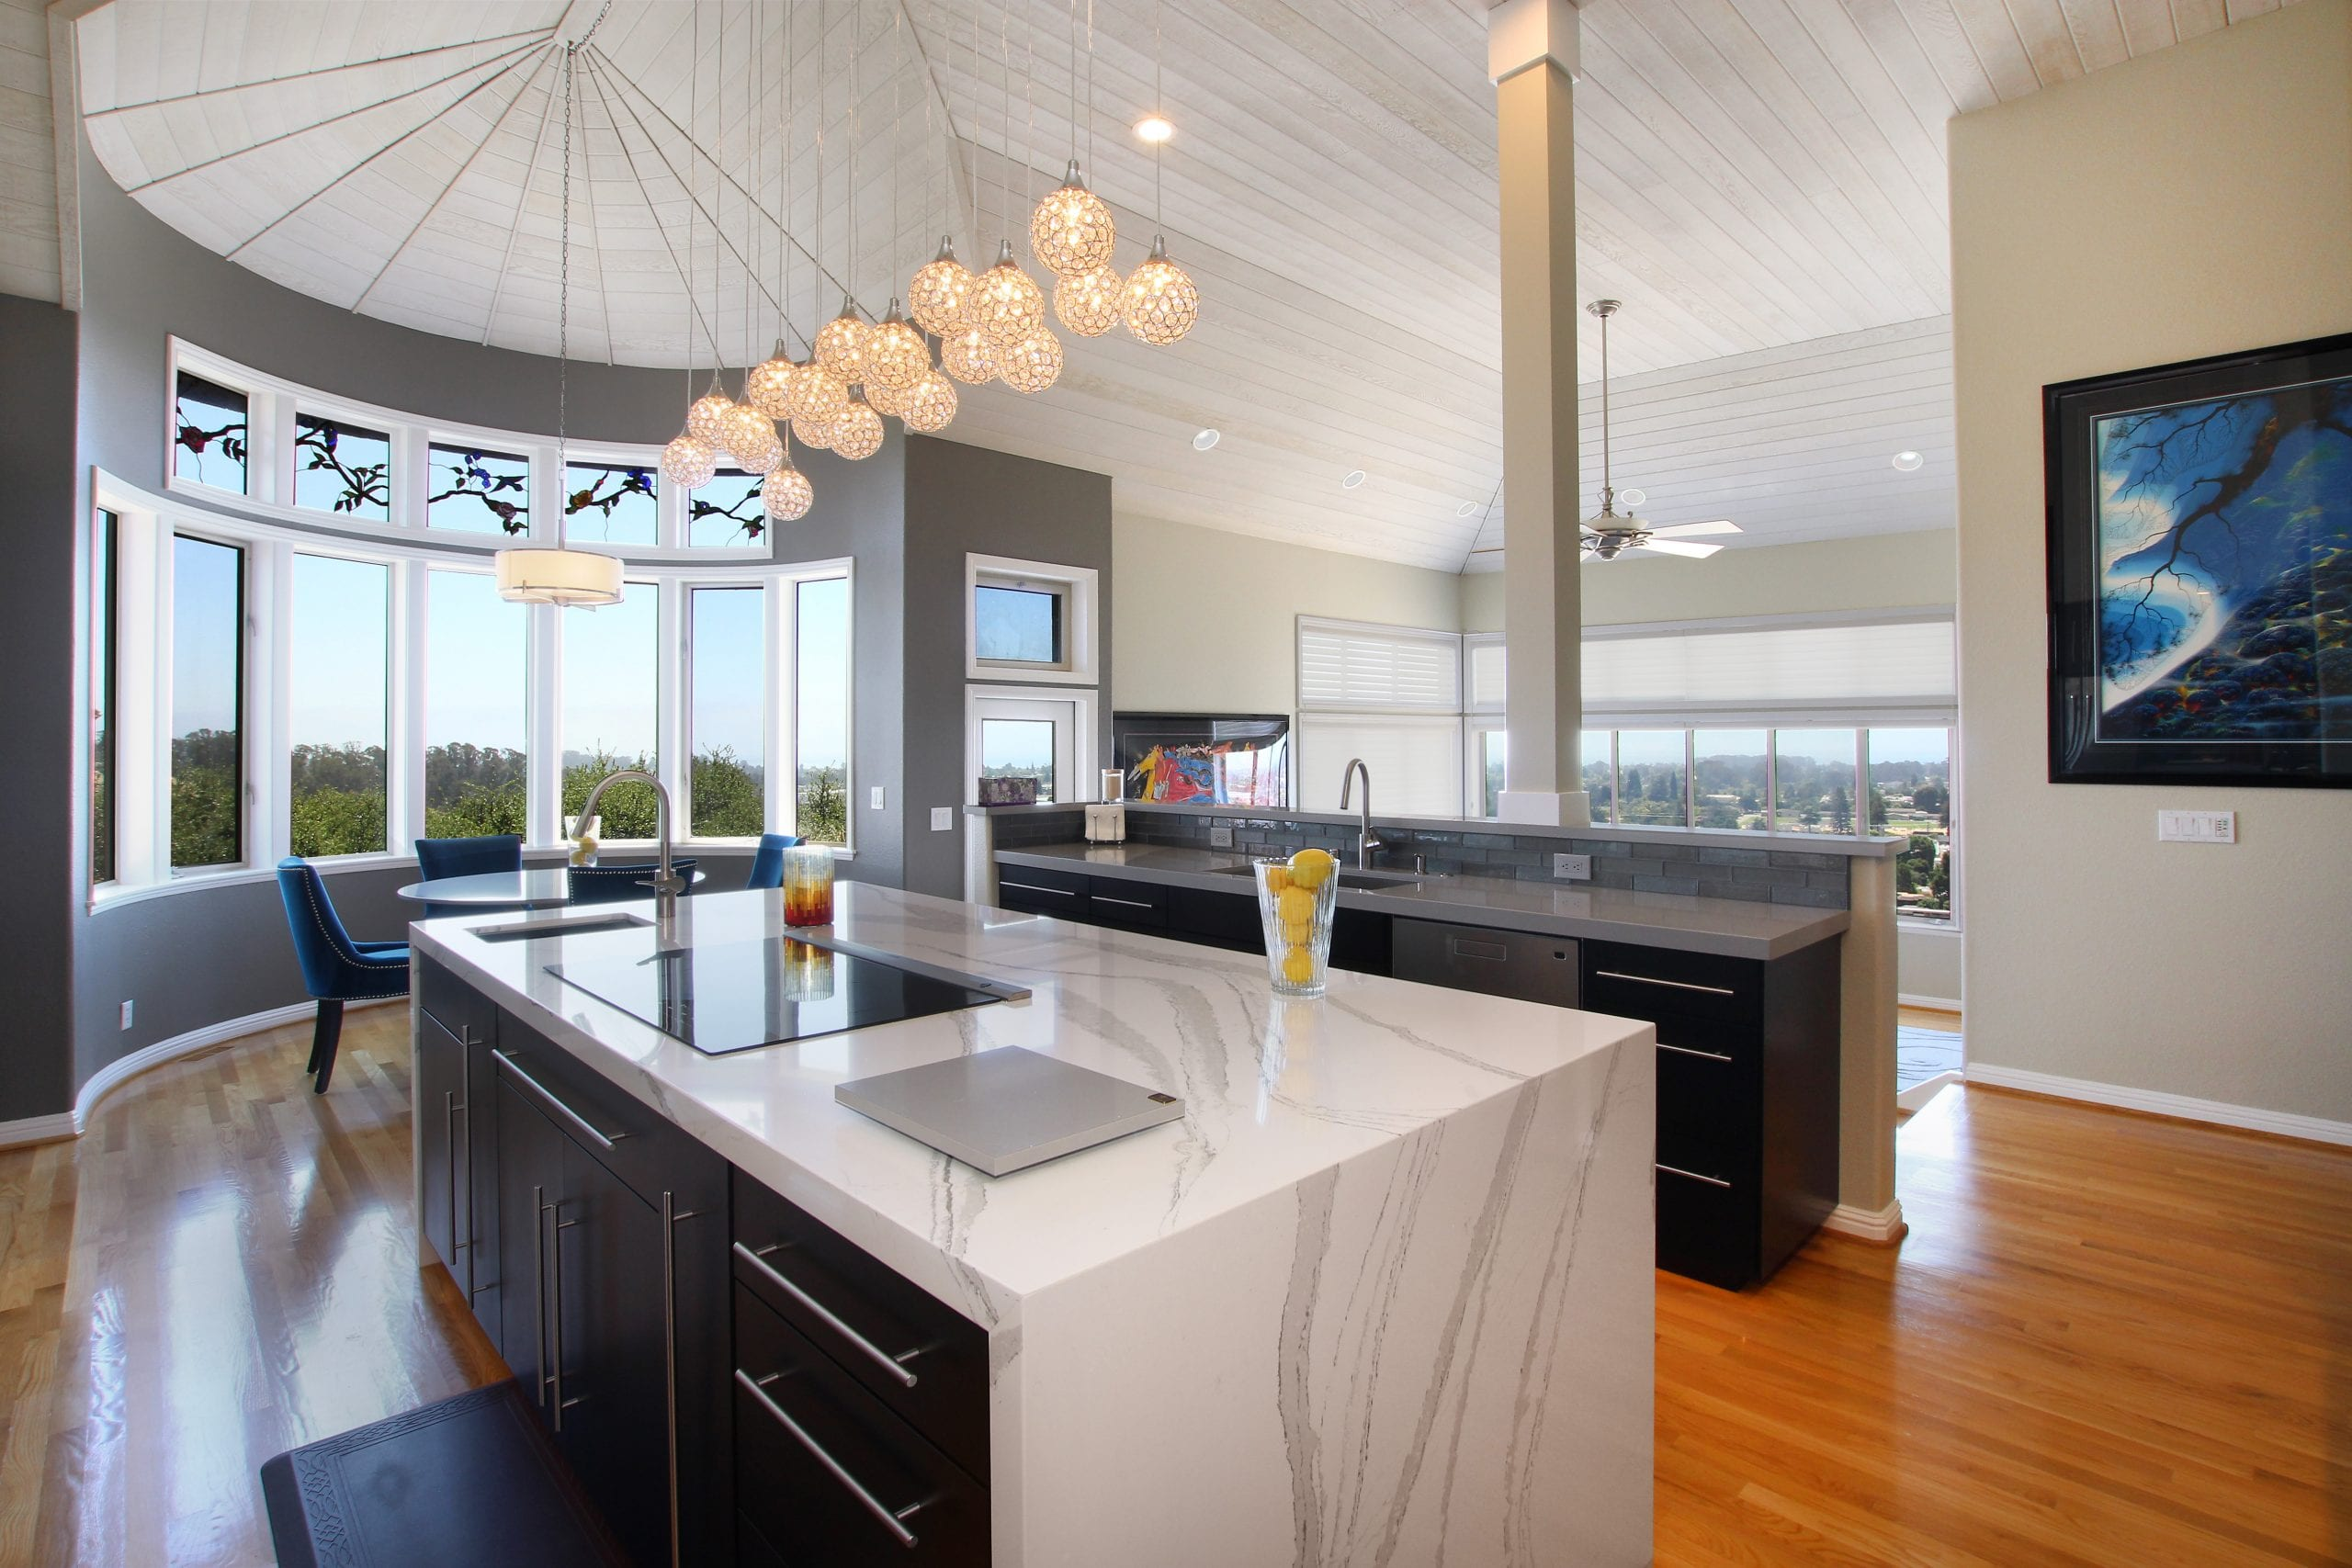 Kitchen with marble countertop, with grey granite streaks embedded